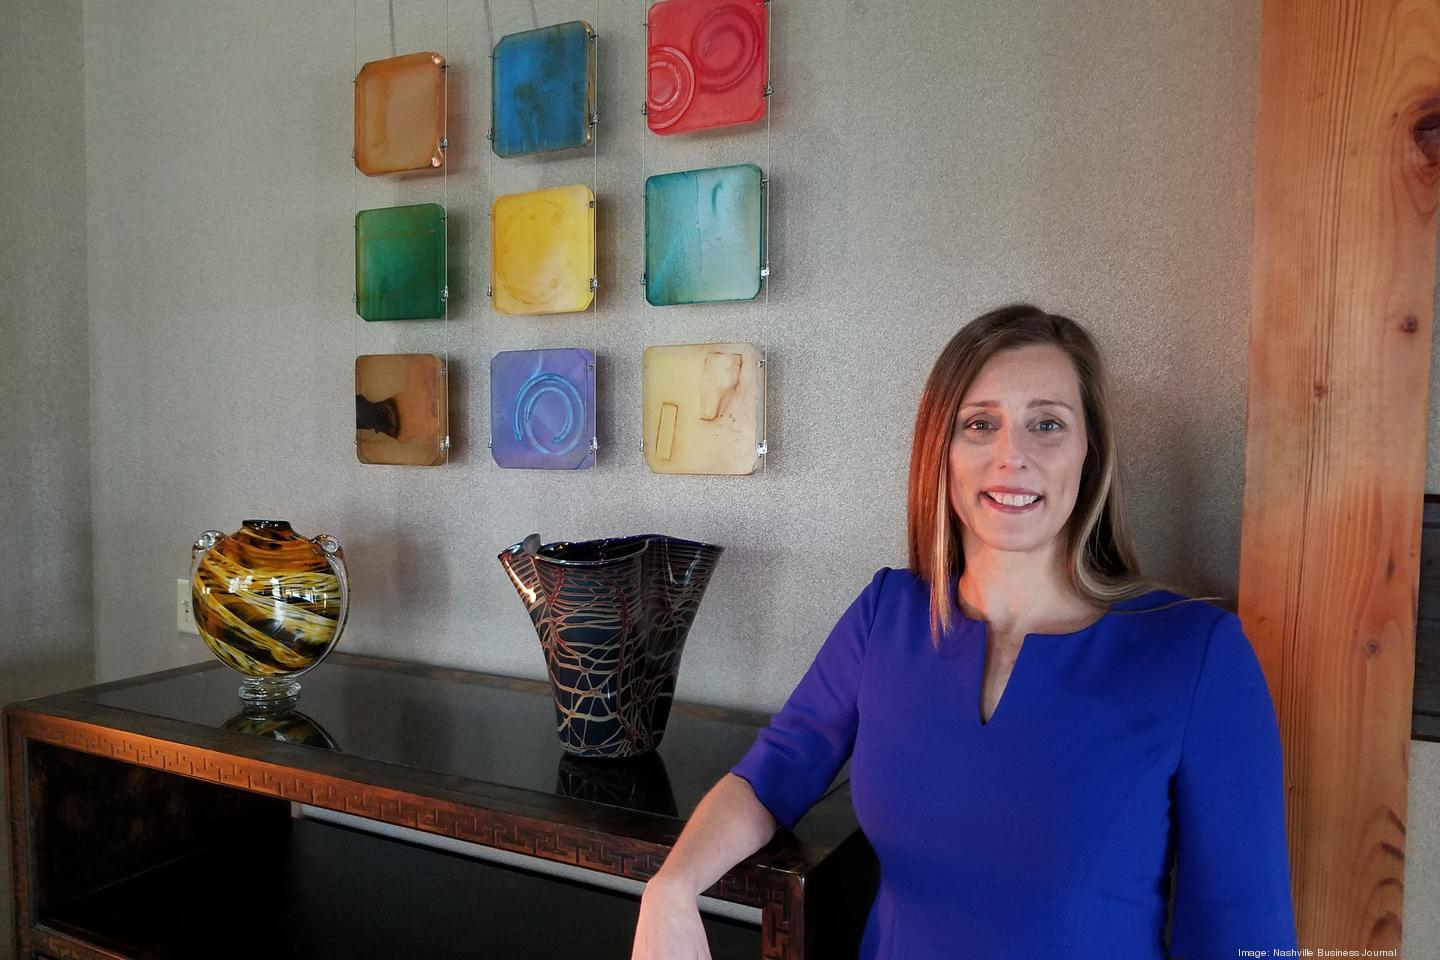 News post image: The Boss: After huge deal, it's one step at a time for Amanda Hite